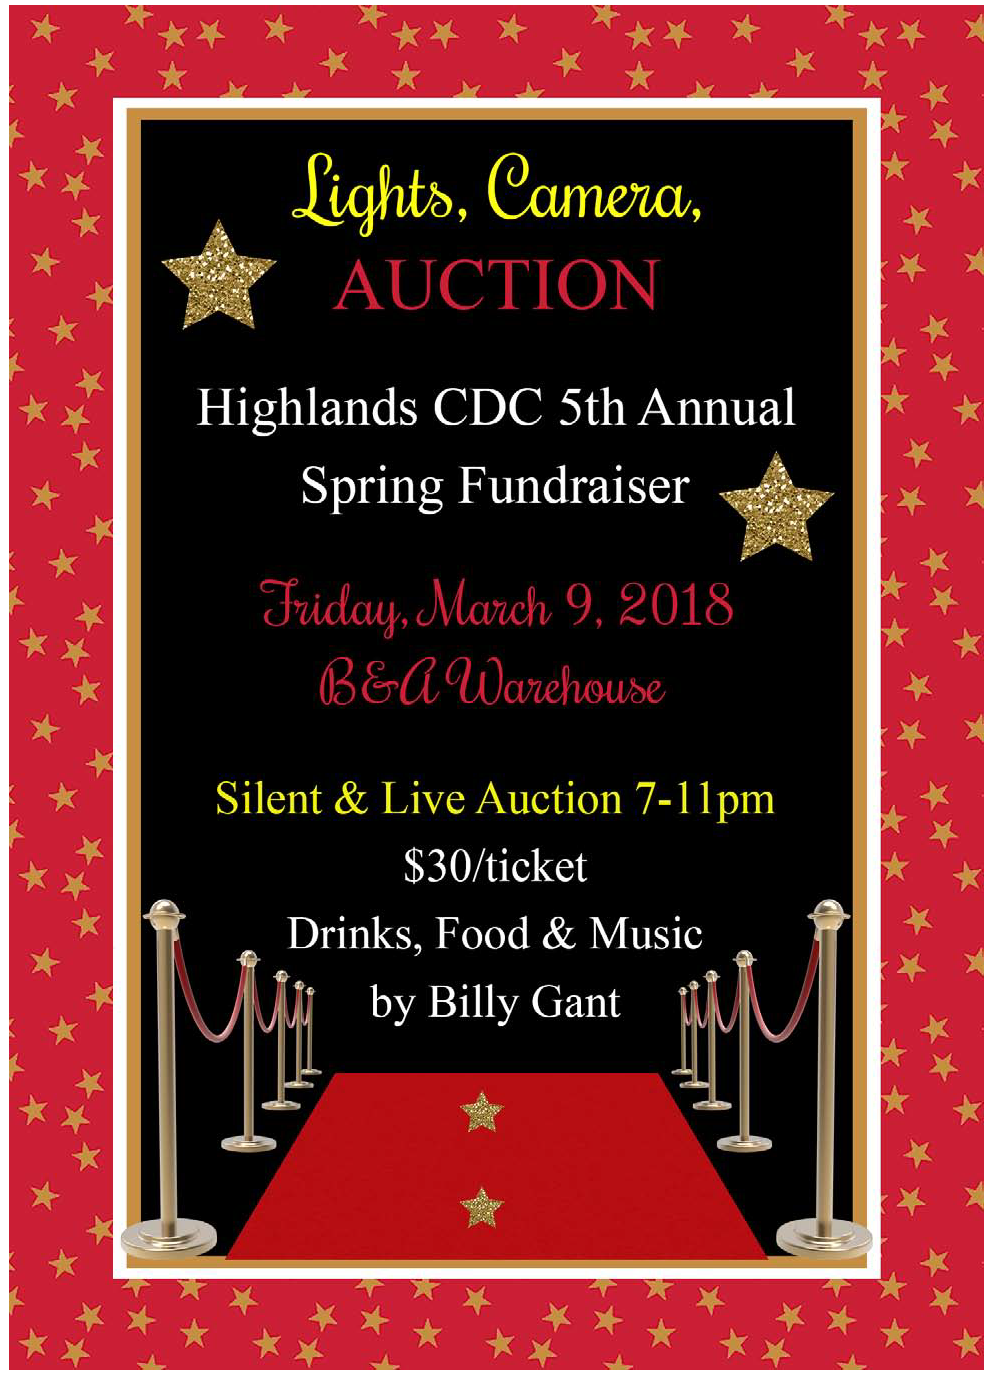 CDC Auction flyer 2018.png